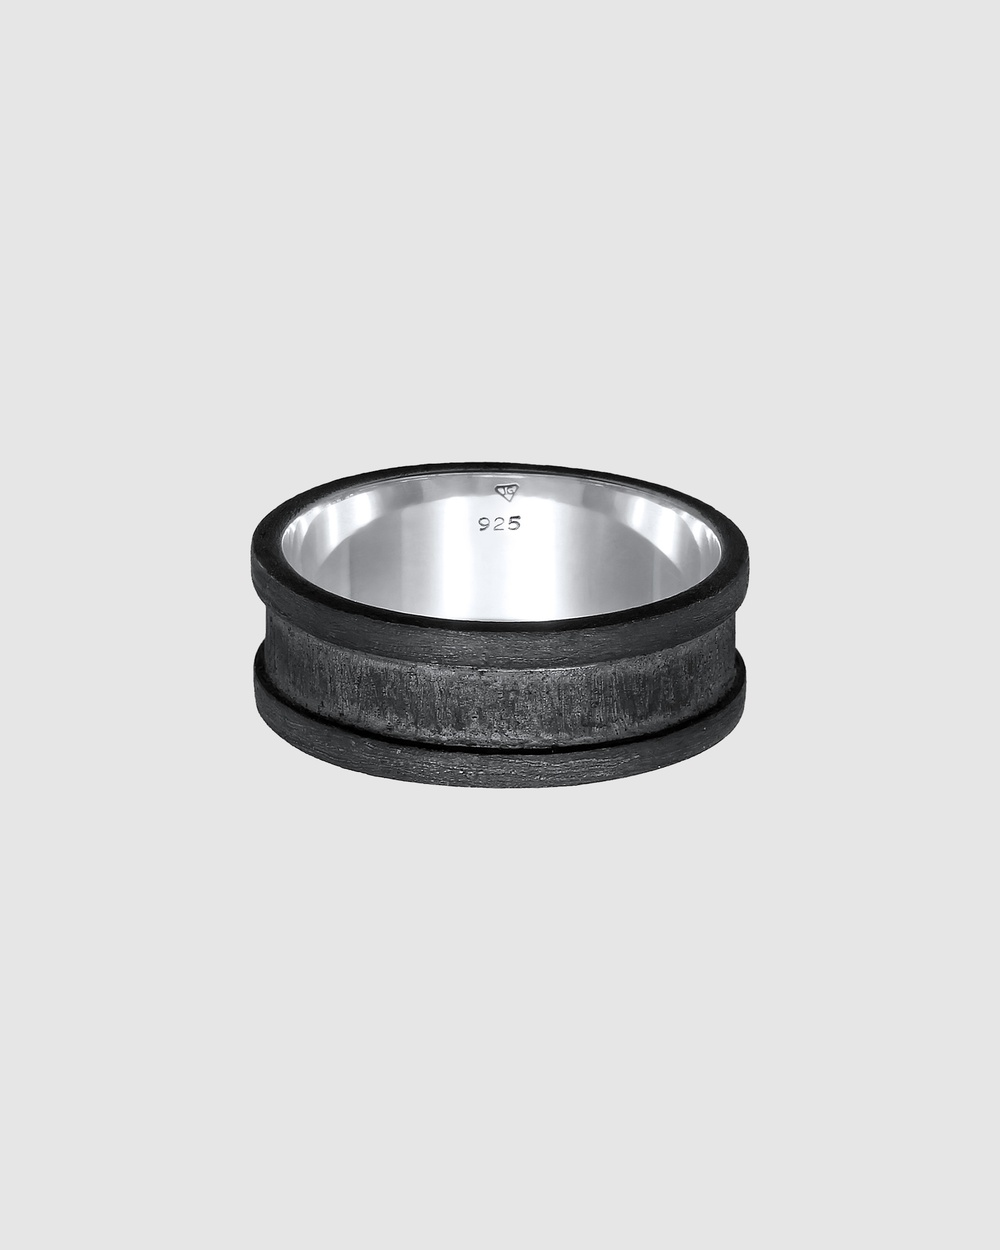 Kuzzoi Ring Bandring Wide Oxidized Casual in 925 Sterling Silver Jewellery Silver